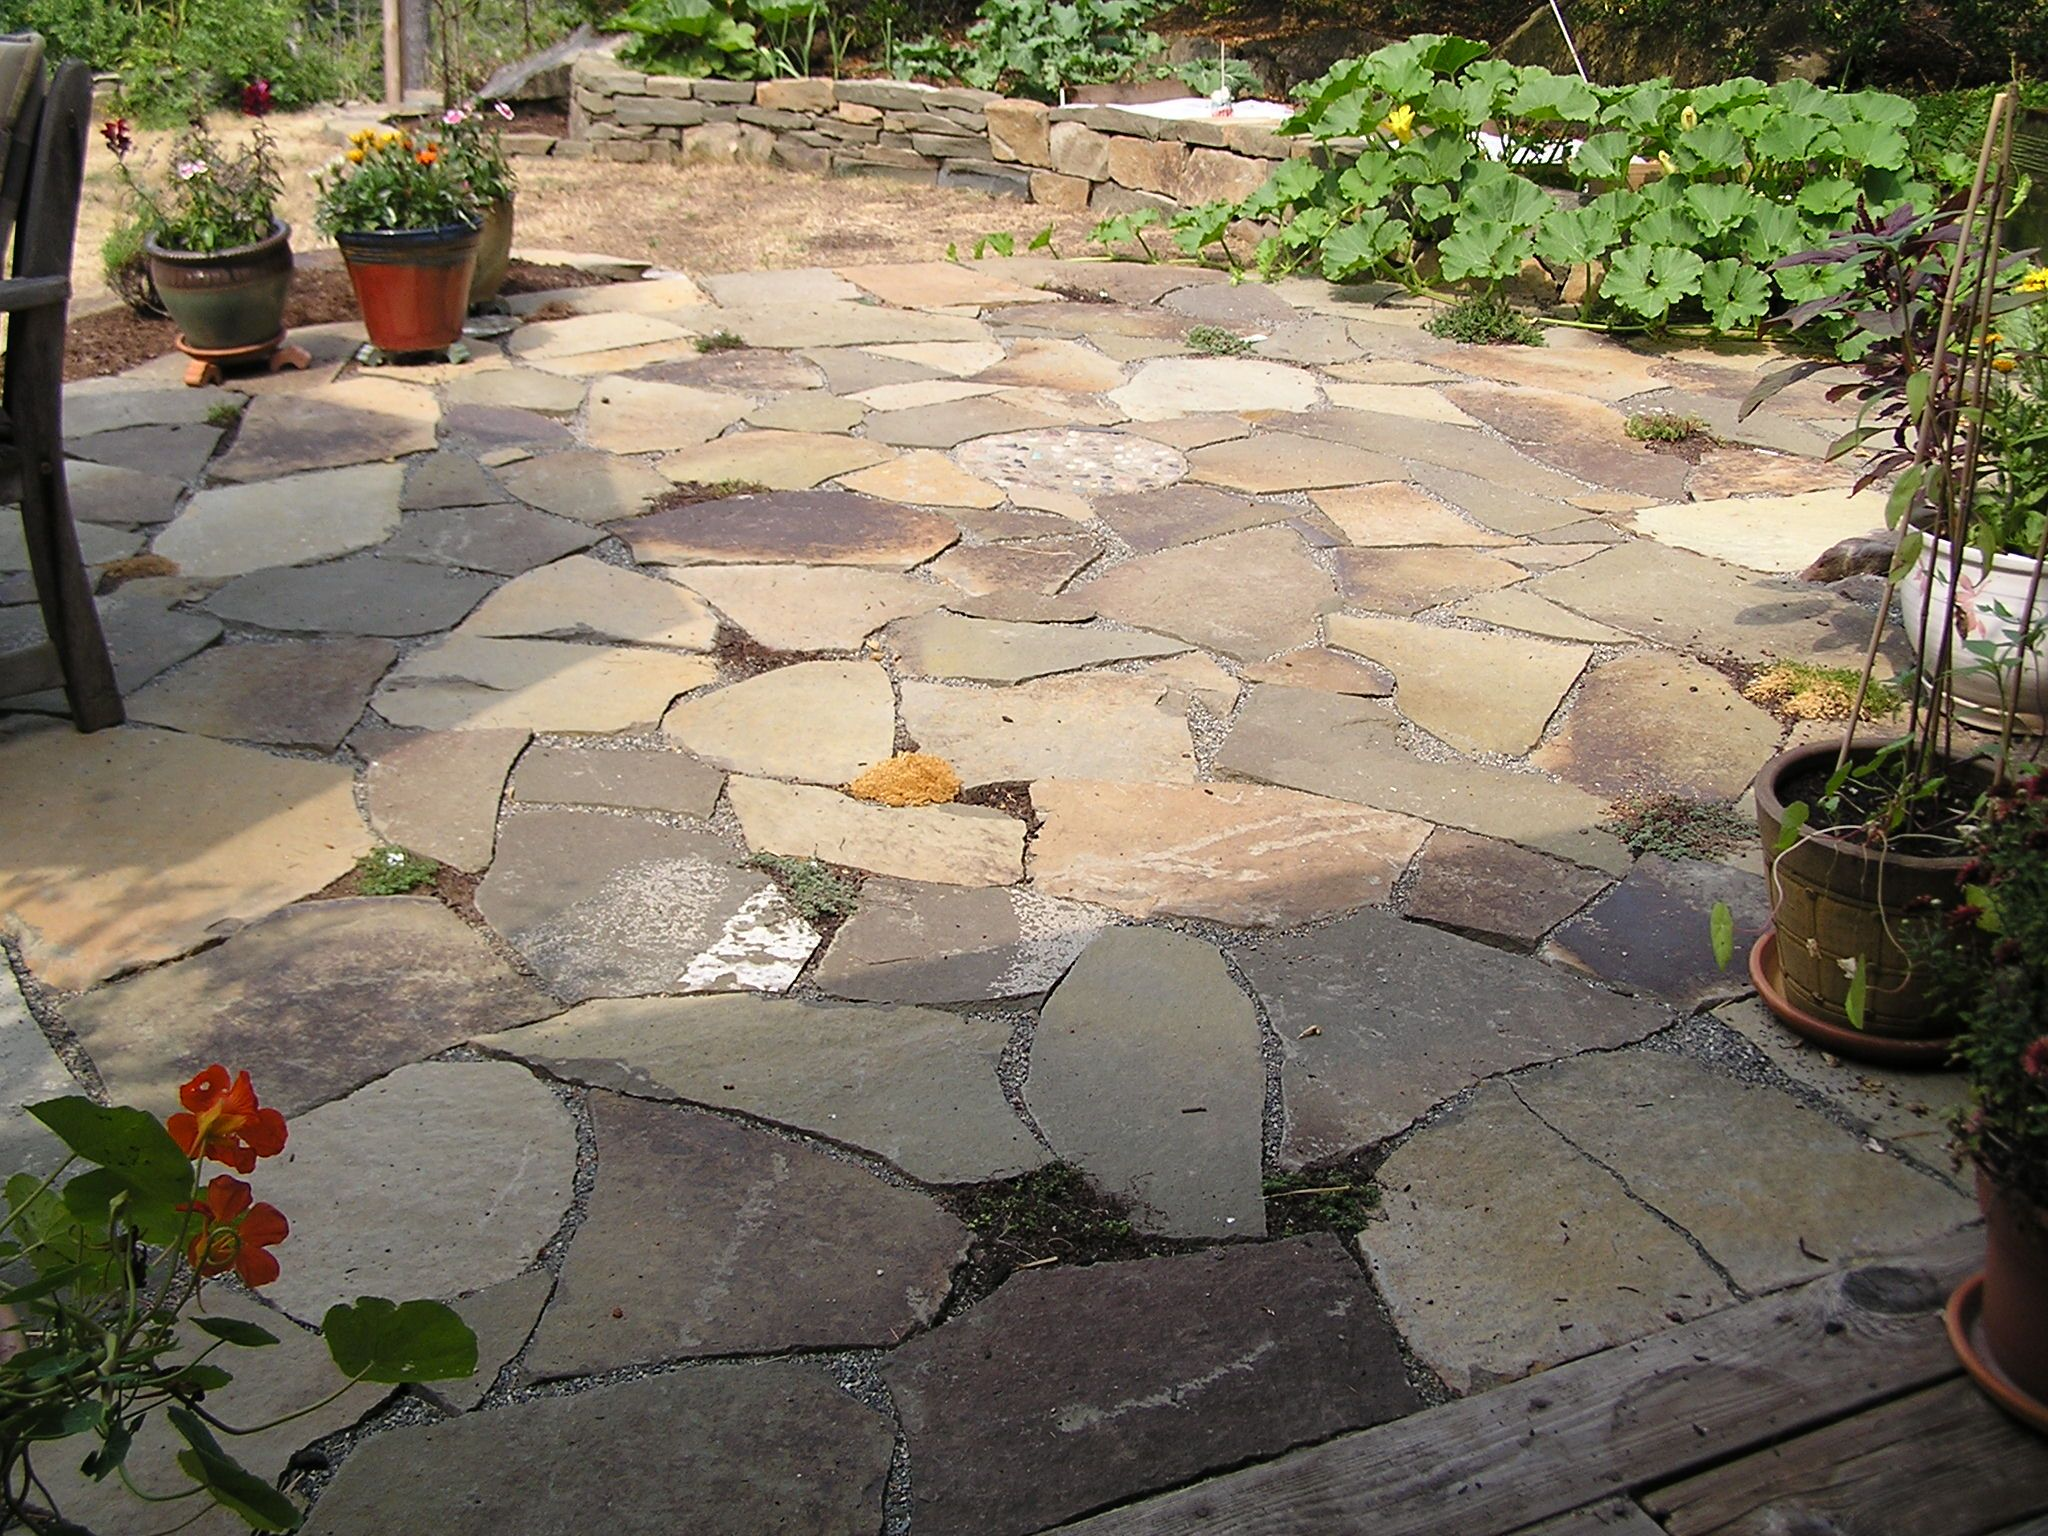 Patio | Beautiful Sandstone Patio Starting To Get Planted With Thyme,  Drystack .